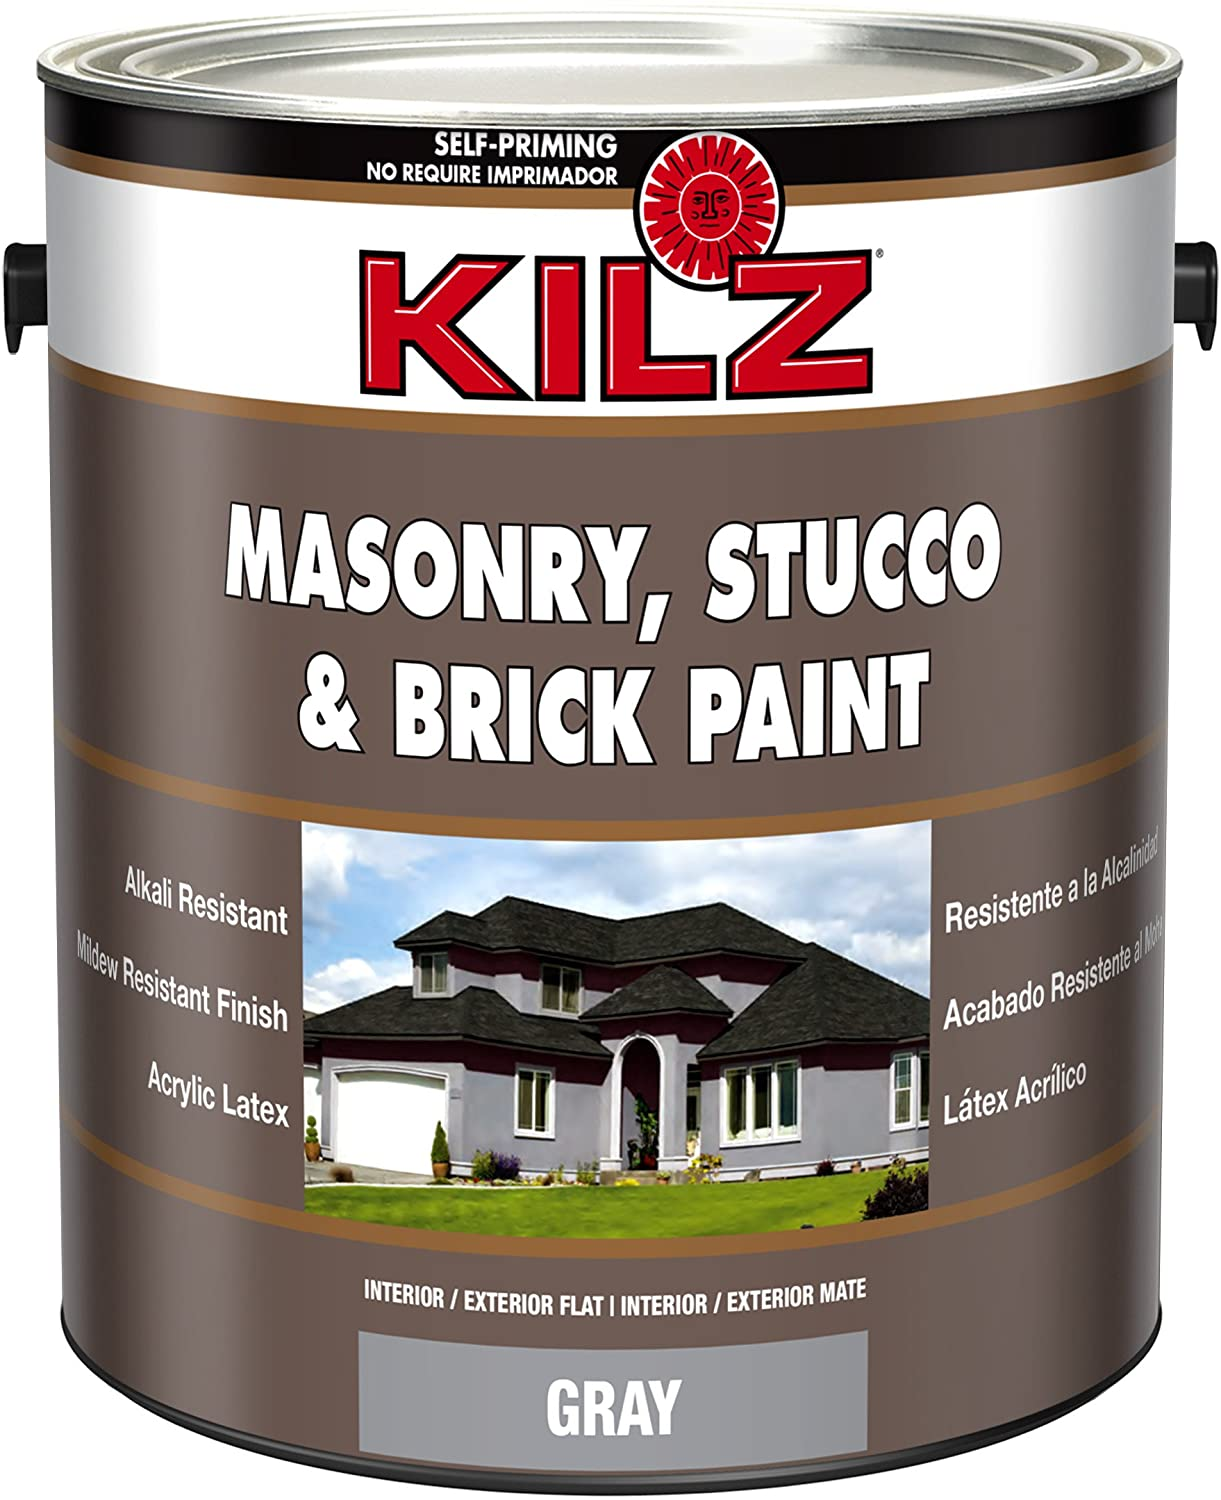 KILZ Interior/Exterior Self-Priming Masonry, Stucco & Brick Paint